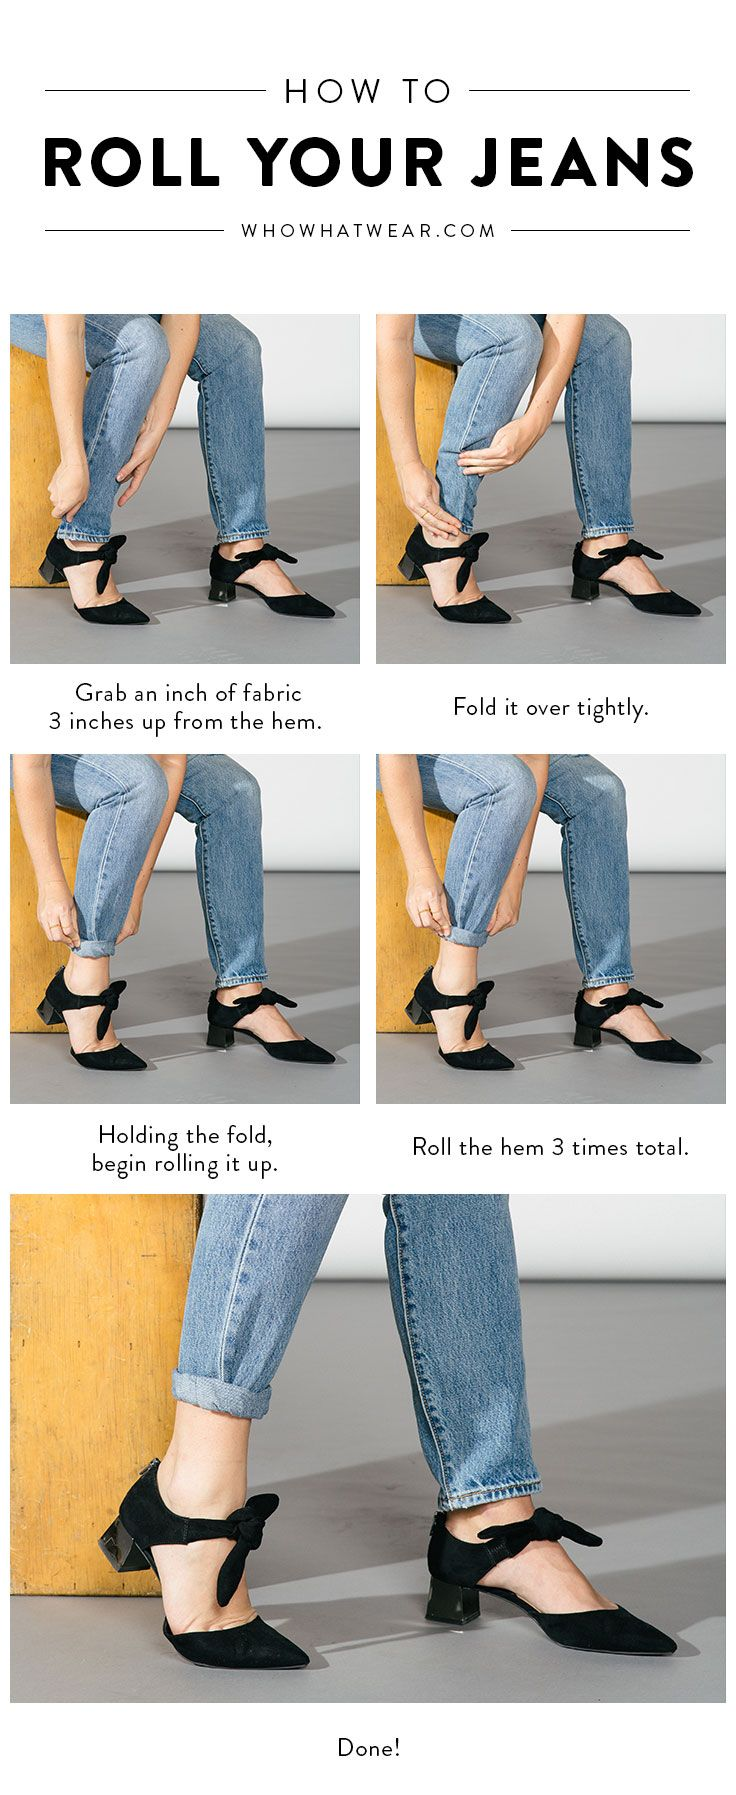 Here's a step-by-step guide to how you should be rolling your jeans.